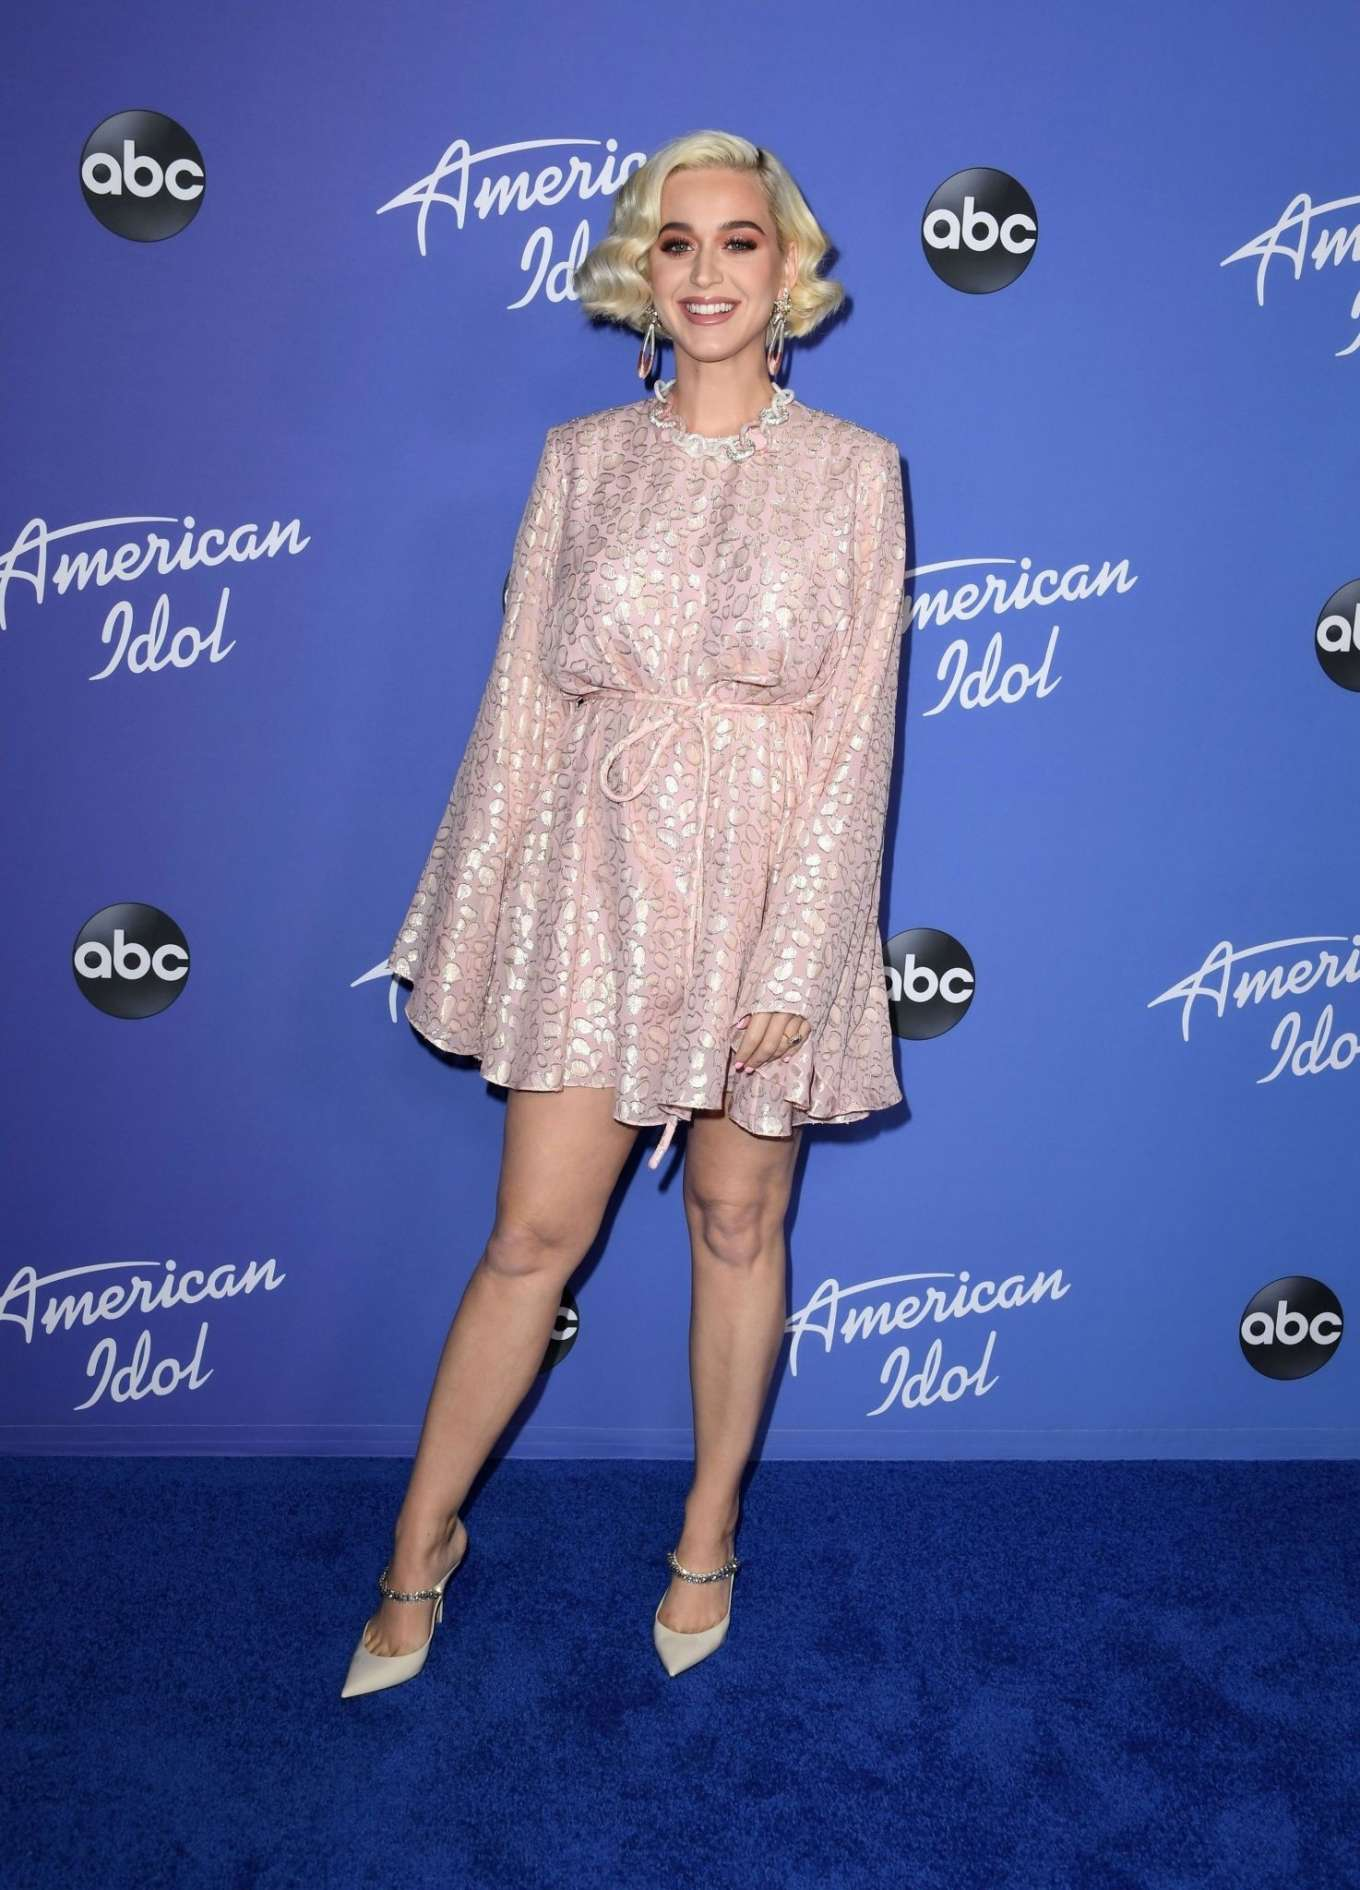 Katy Perry 2020 : Katy Perry – premiere event for new American Idol season in Hollywood-15